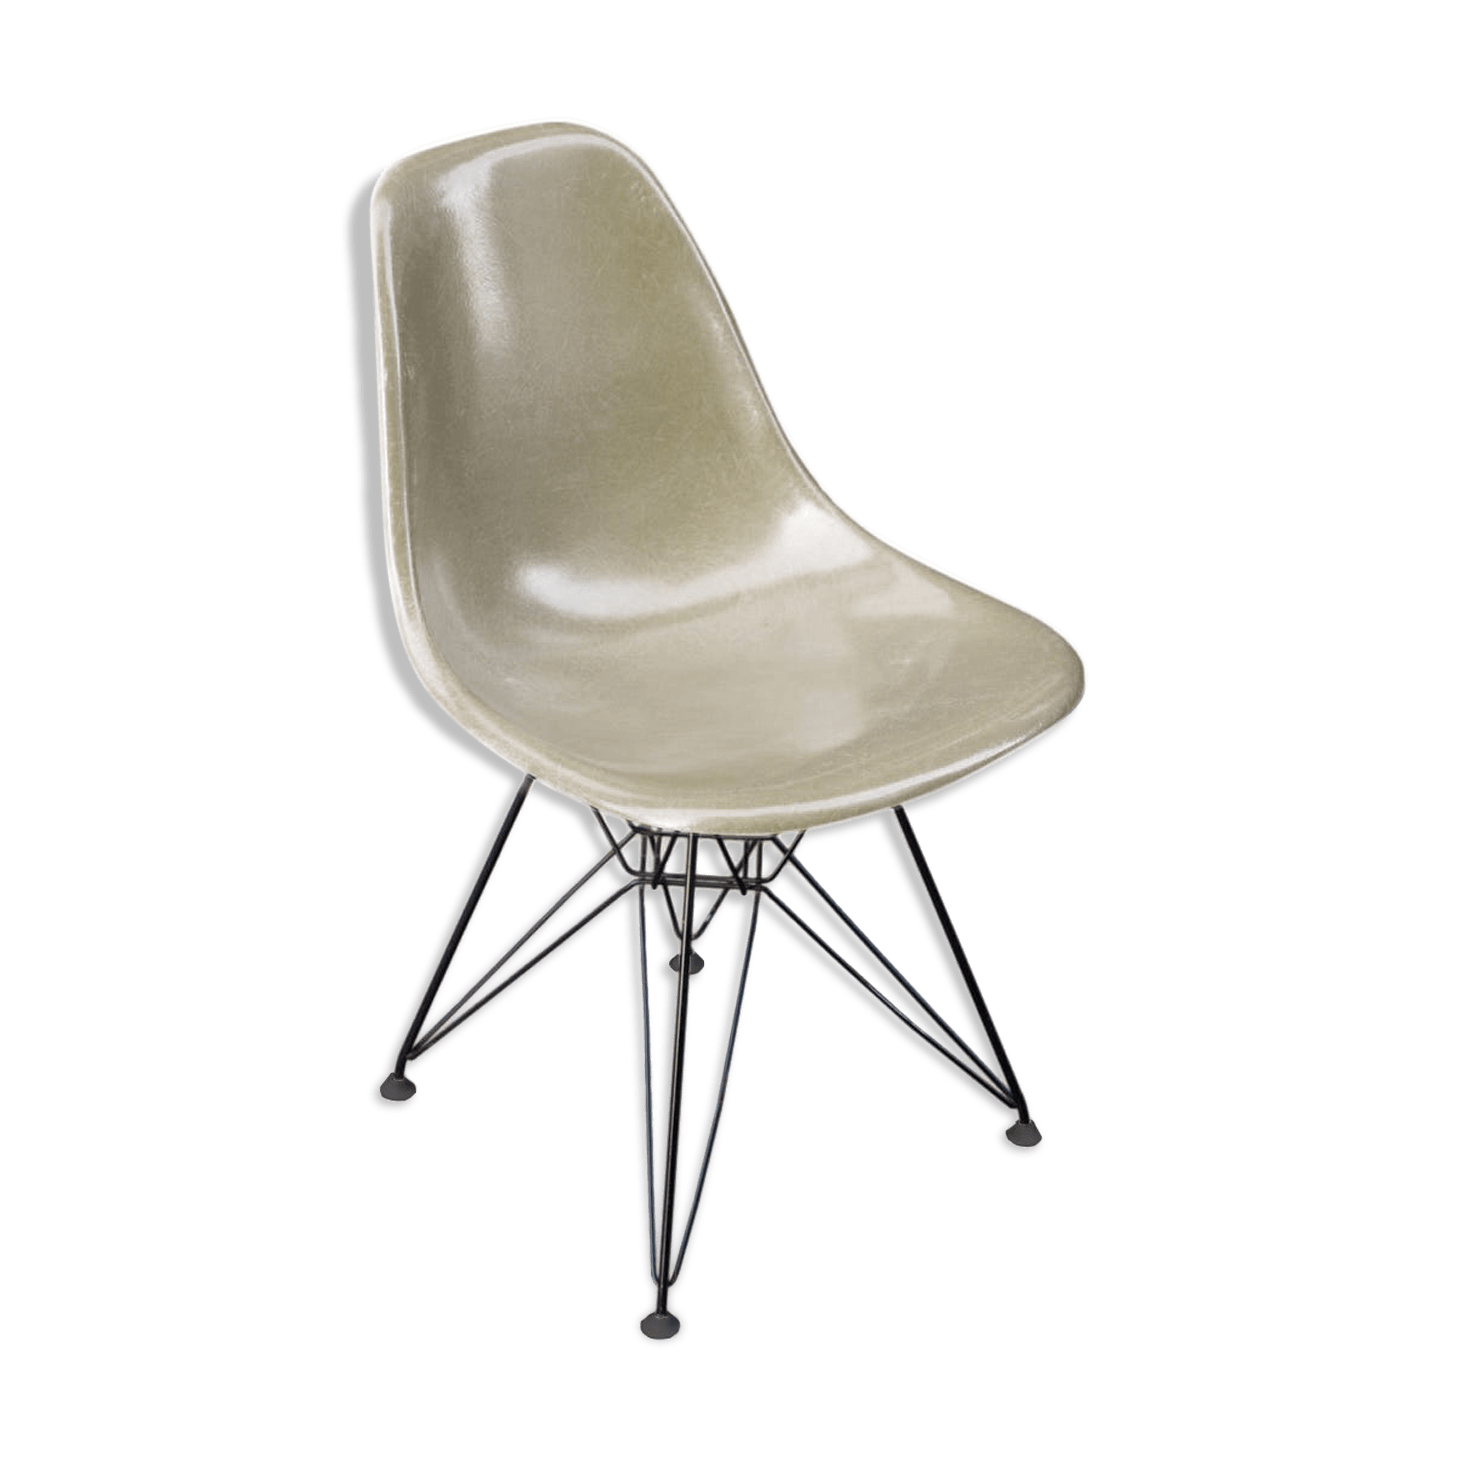 Original Eames Chair Fauteuil Eames Original